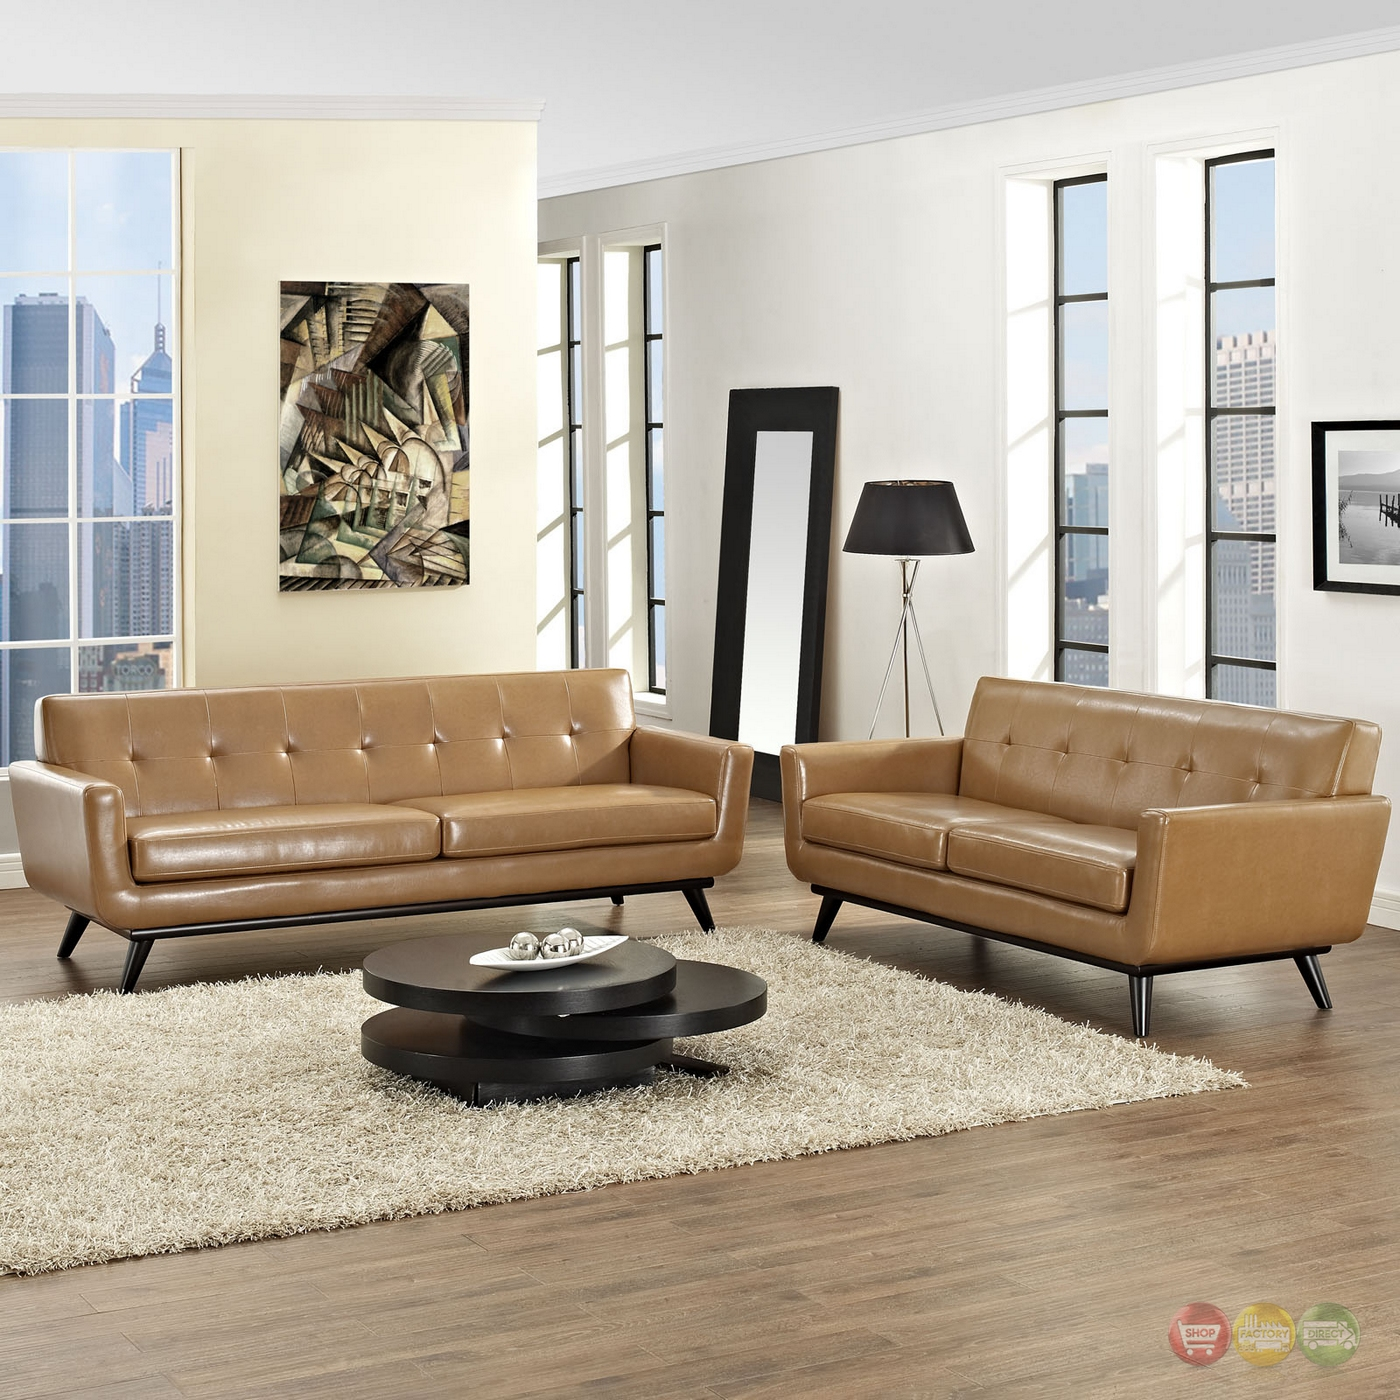 Century modern engage 2pc button tufted leather living room set tan